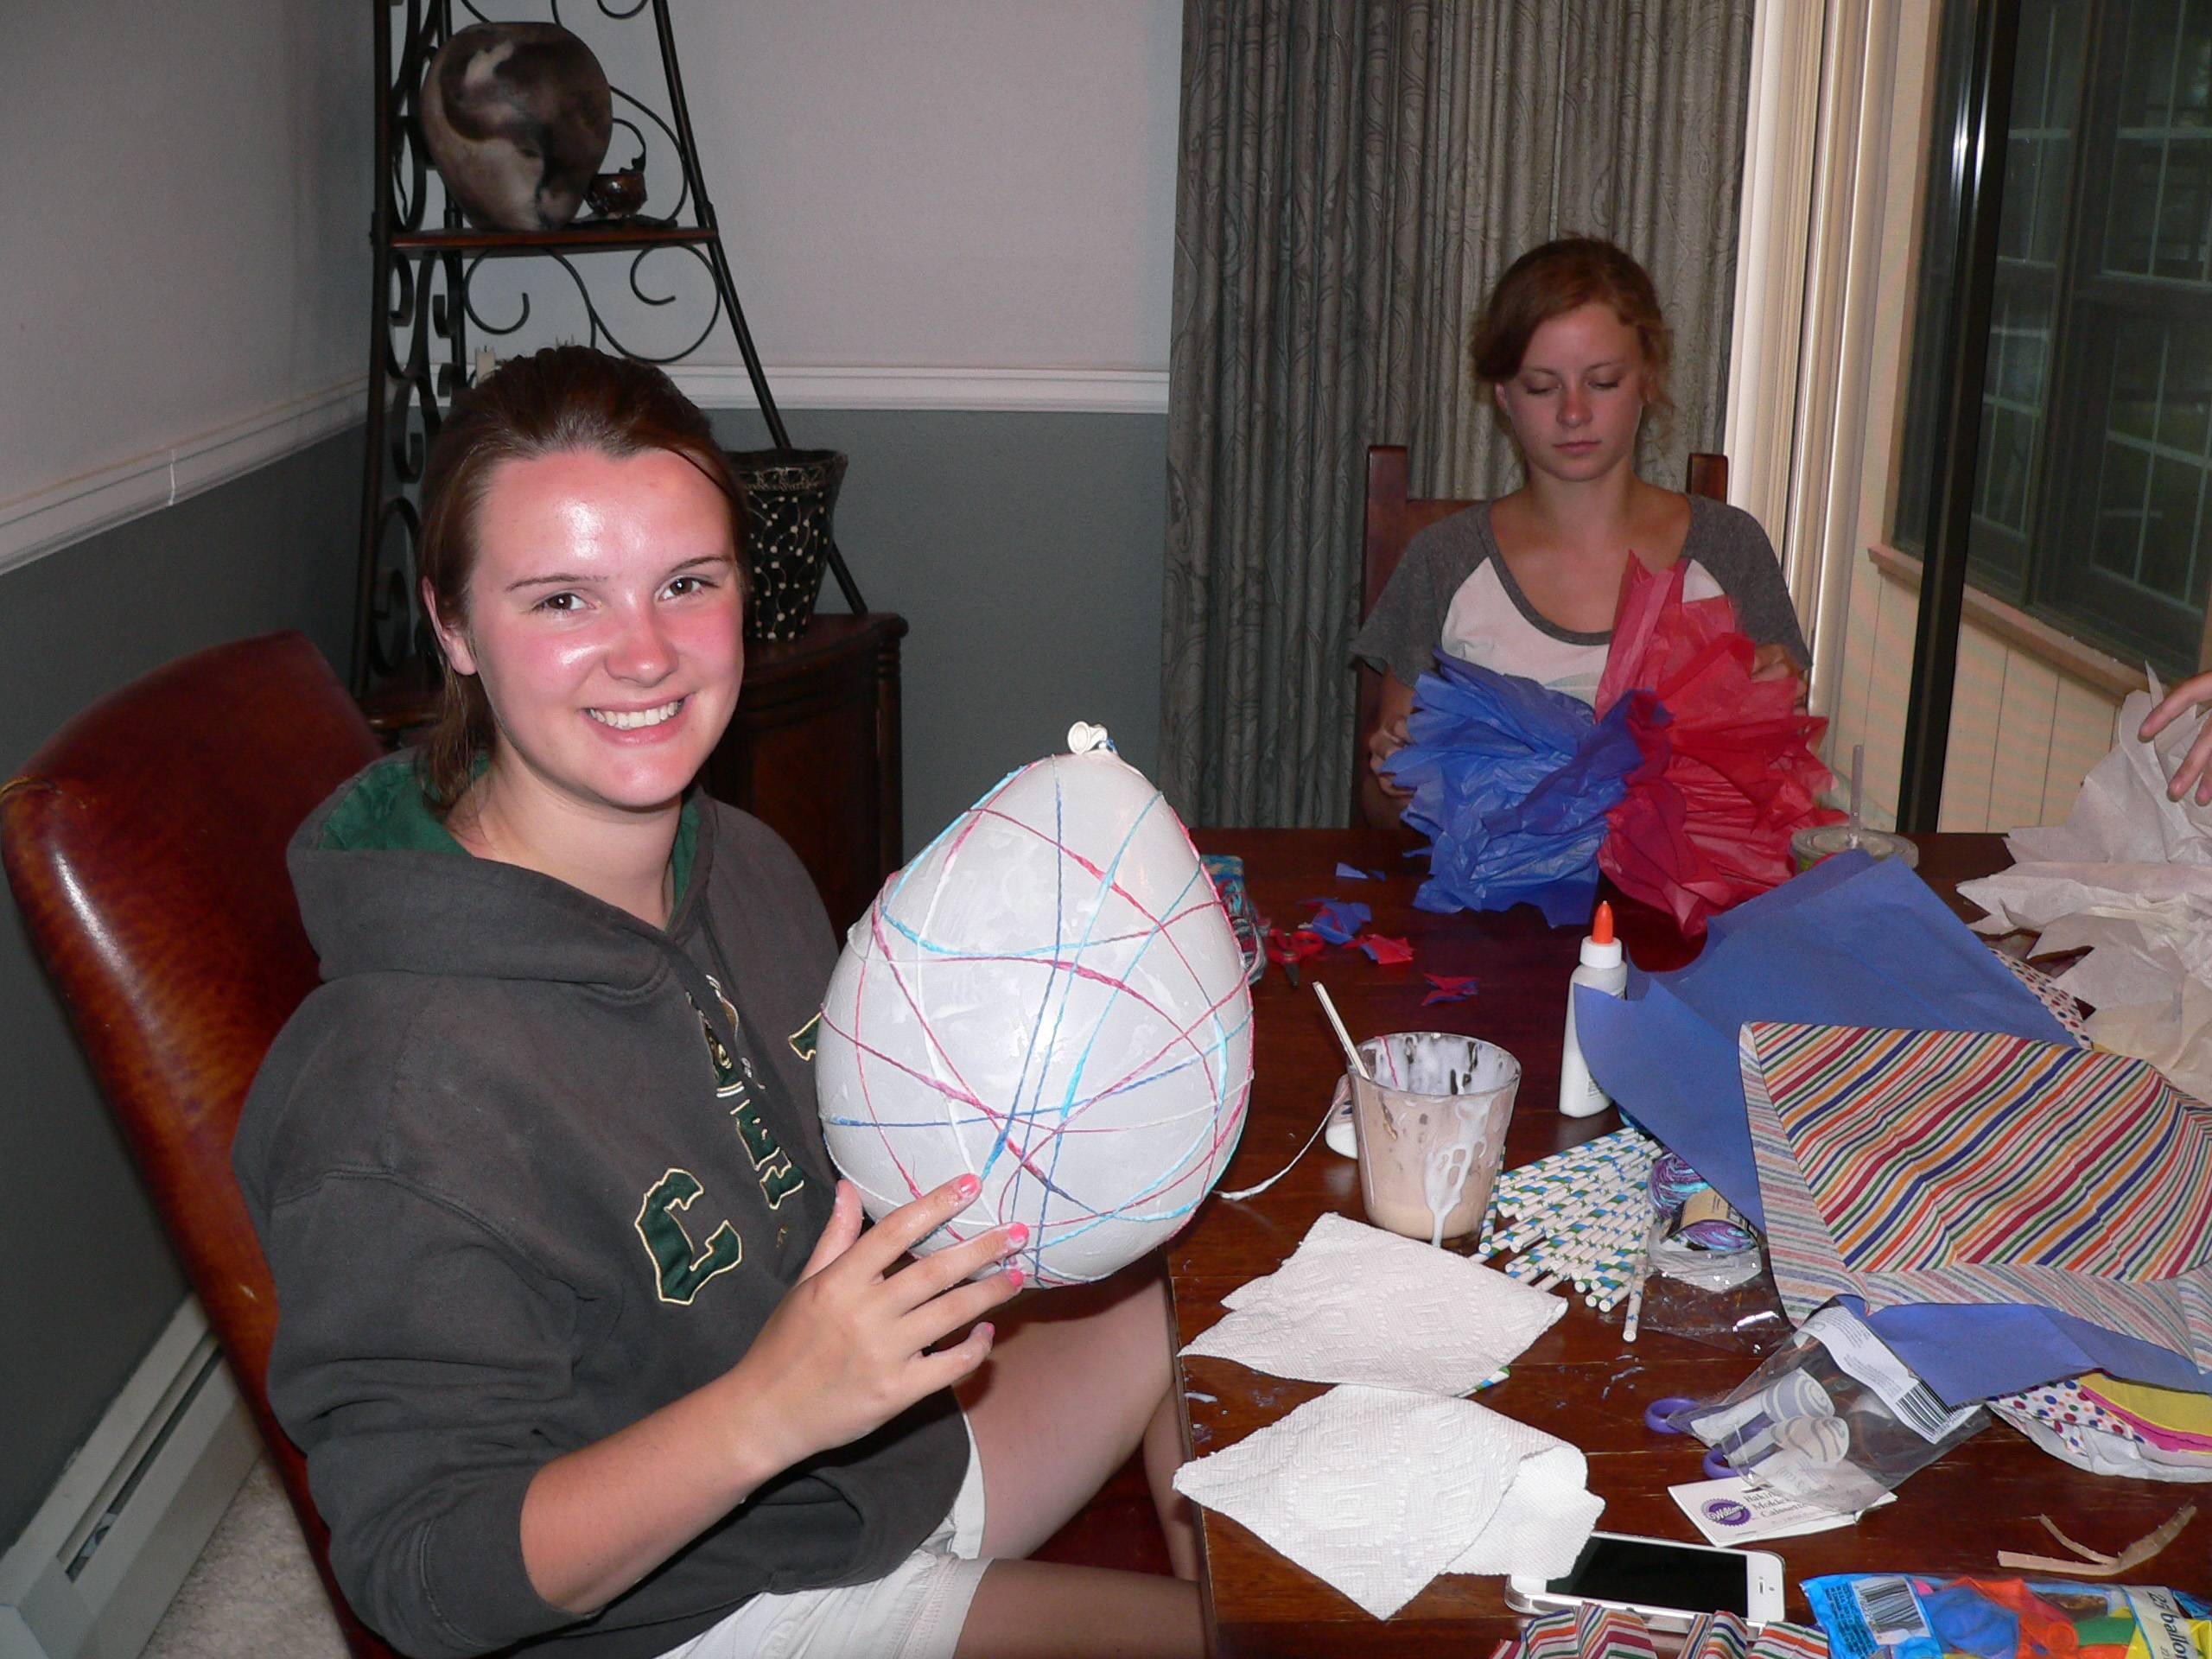 Hope Clarke, 16, left, wraps yarn soaked in craft glue around a balloon while Hadley Hagemann, 16, works on a giant tissue pom-pom at a crafting night hosted at Clarke's house in Arvada, Colo. After the glue dried, Clarke popped and removed the balloon to reveal a colorful orb for hanging.